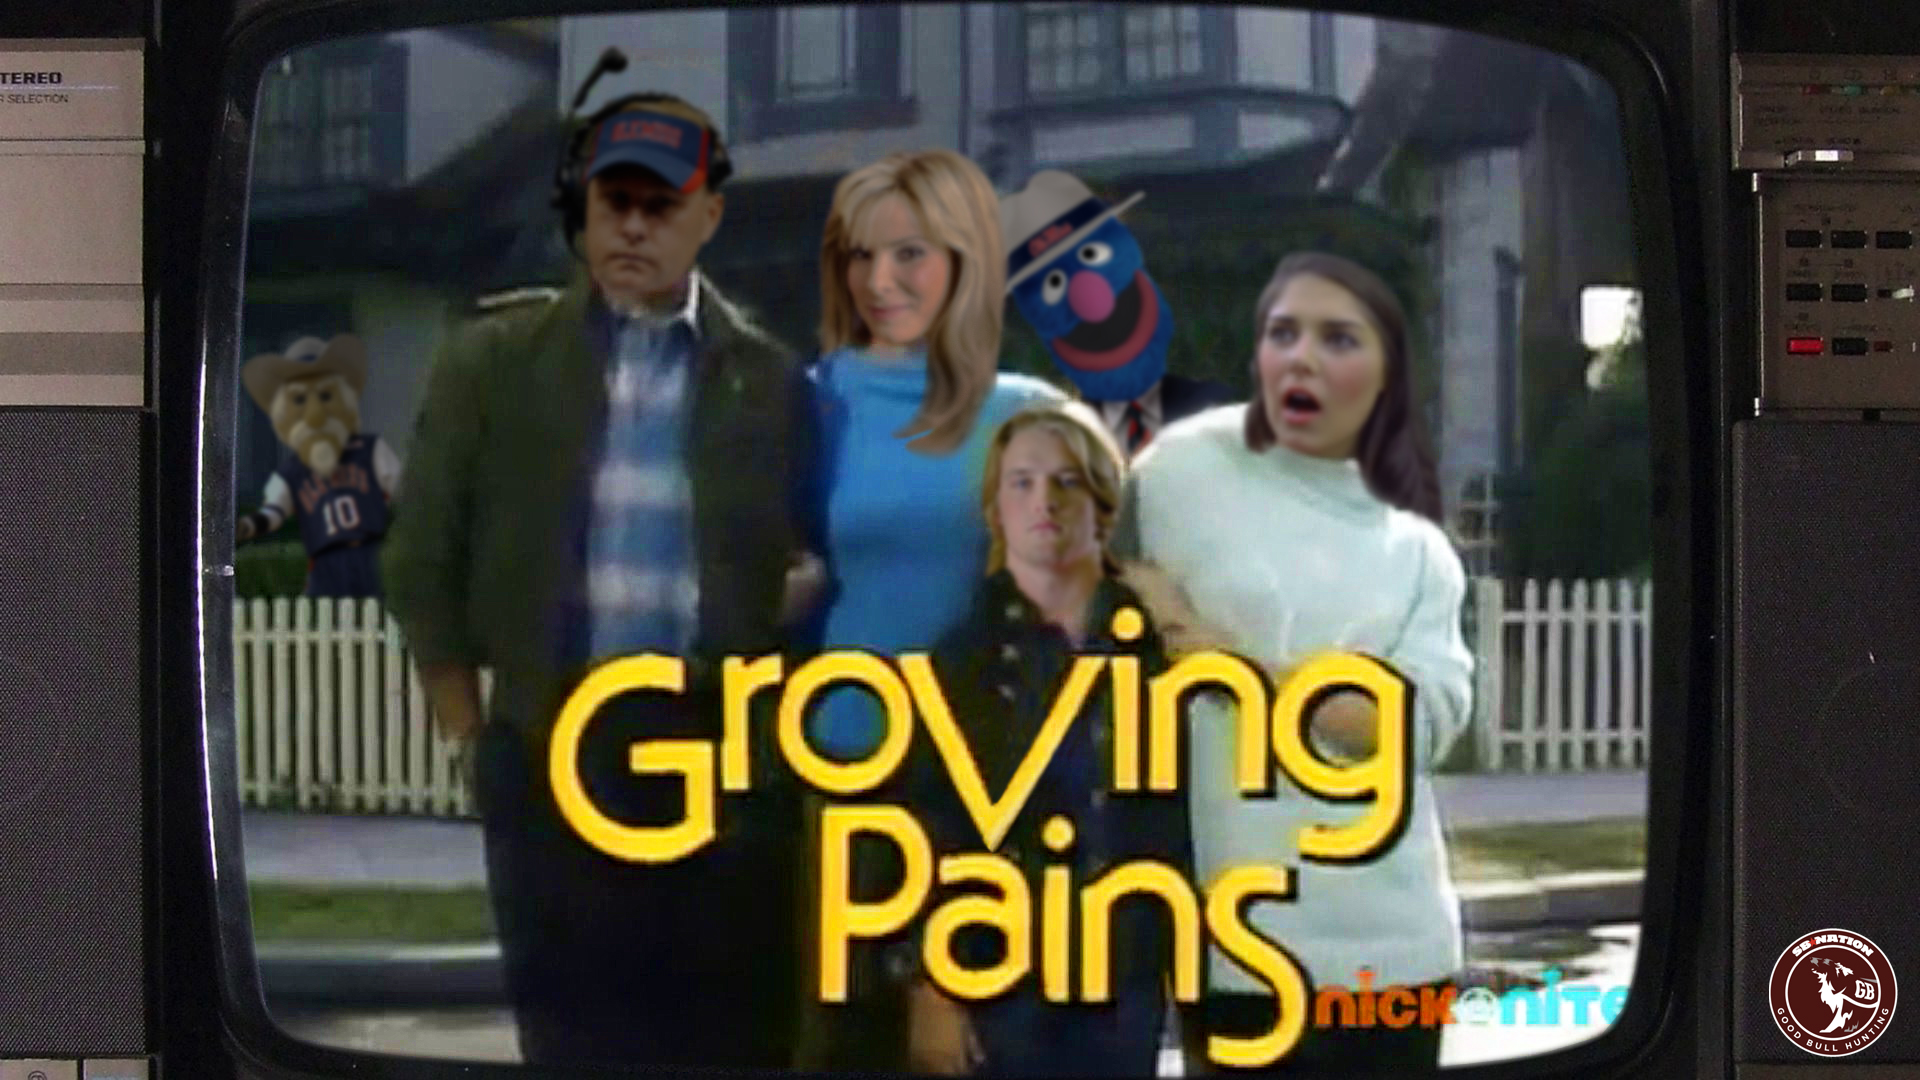 Groving_pains